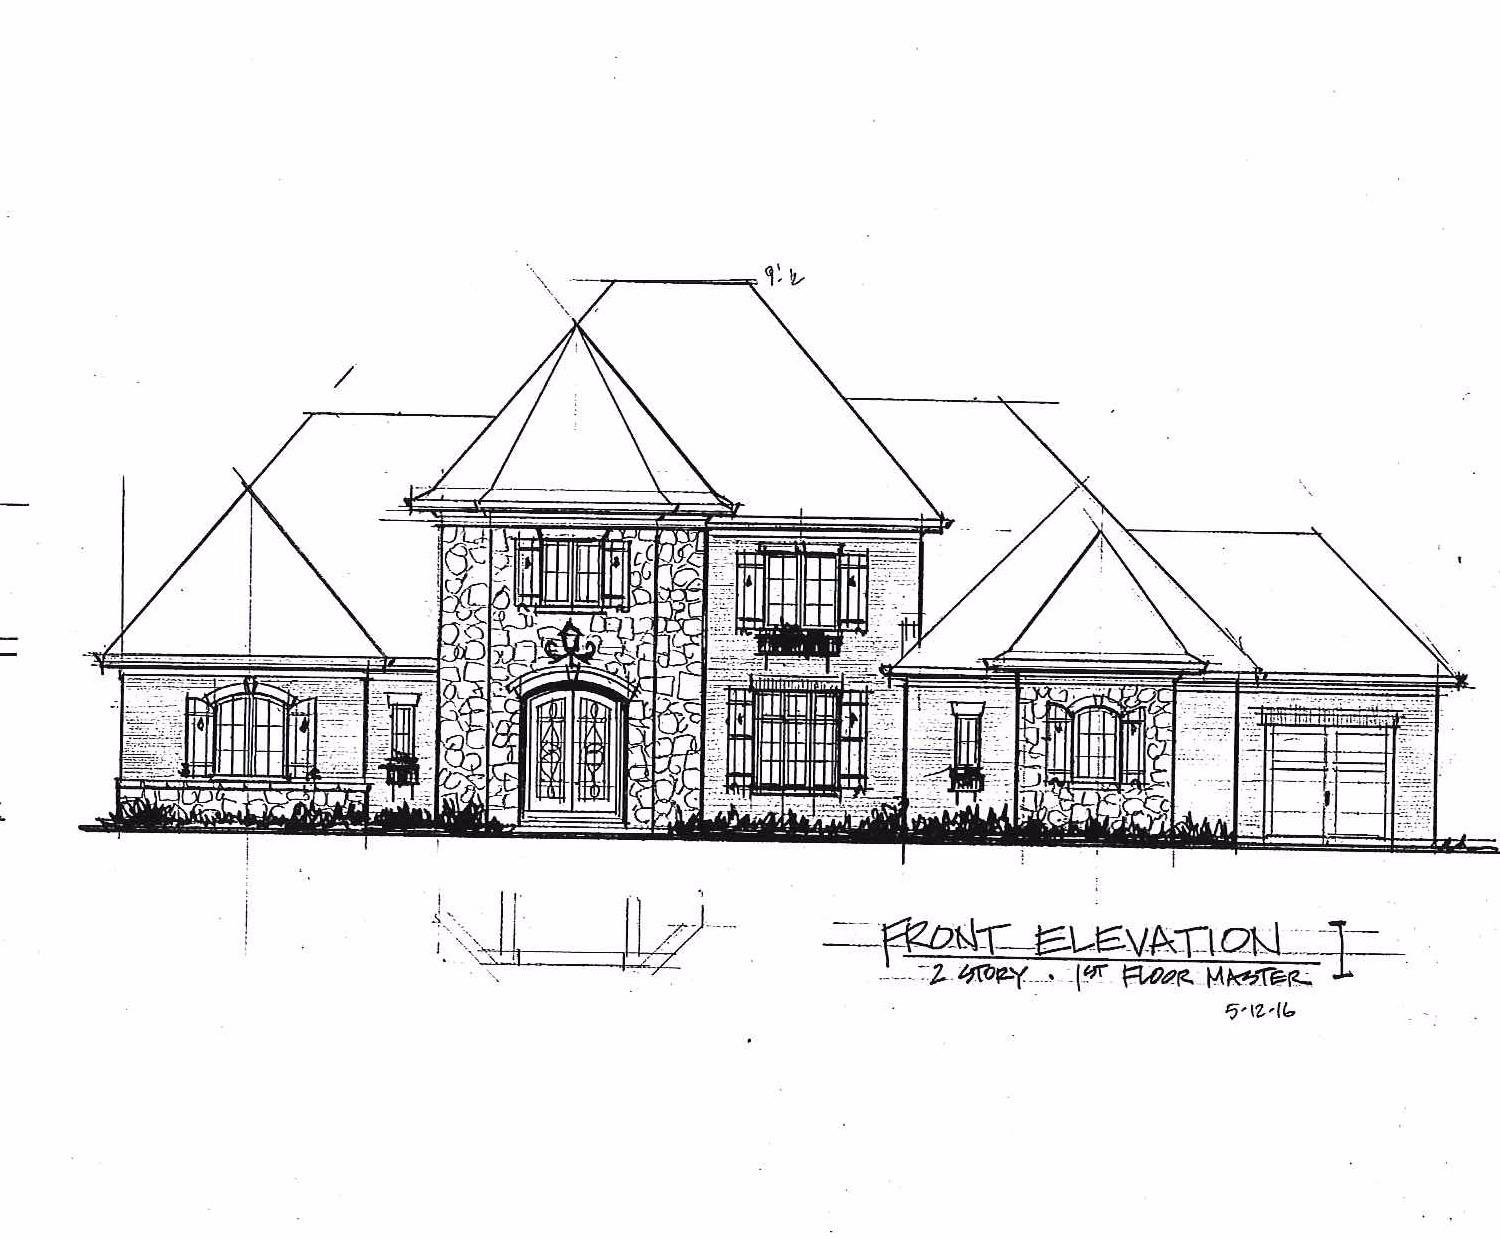 Amazing opportunity to CUSTOM BUILD your dream home w/award-winning STERLING HOMES! Select this plan,or create your own w/the design team. Gorgeous open floor plan, 1st flr master,formal DR, study,cov porch & 3 car garage.Finest amenities, details and craftsmanship.  Located in Anderson's hottest development on 1+ acre, cul de sac street.